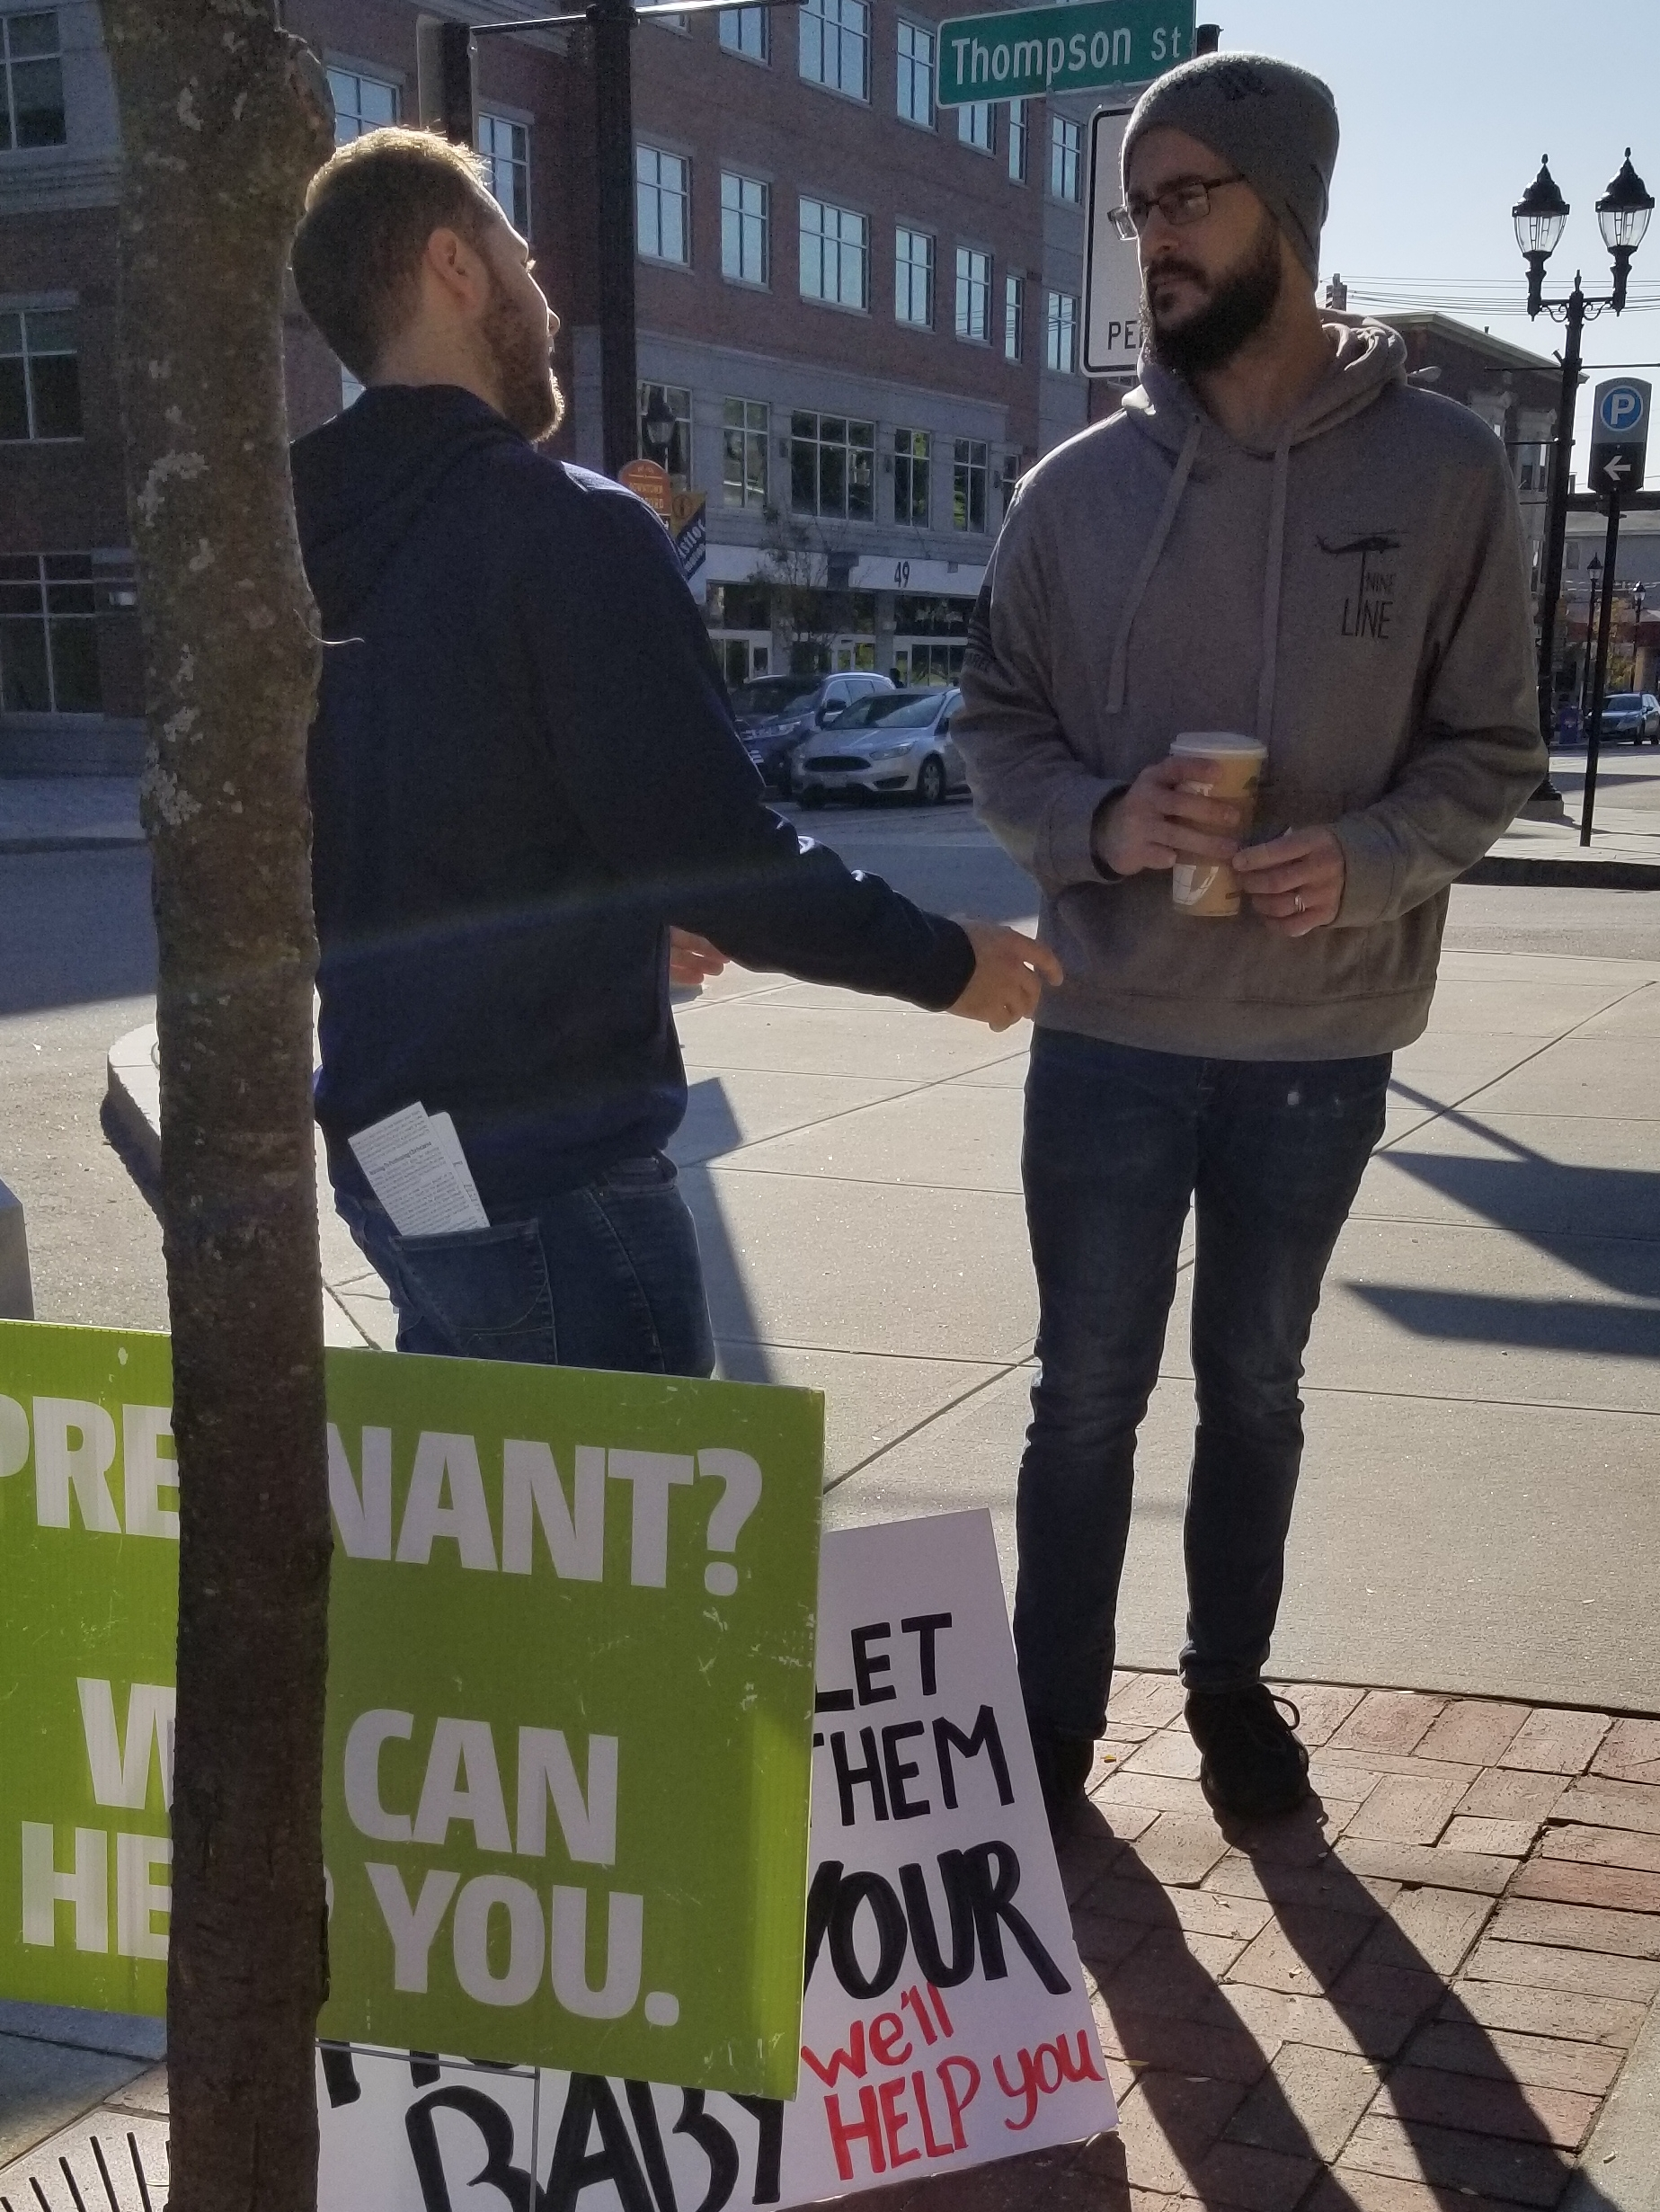 This man (right) walked by us in front of the abortion clinic and encouraged us to stand against abortion.  We're happy when people are against abortion, but we're MUCH more concerned that people are saved Born-Again believers. Michael got to talk to this man about the claims of Jesus and gave him much to think about.